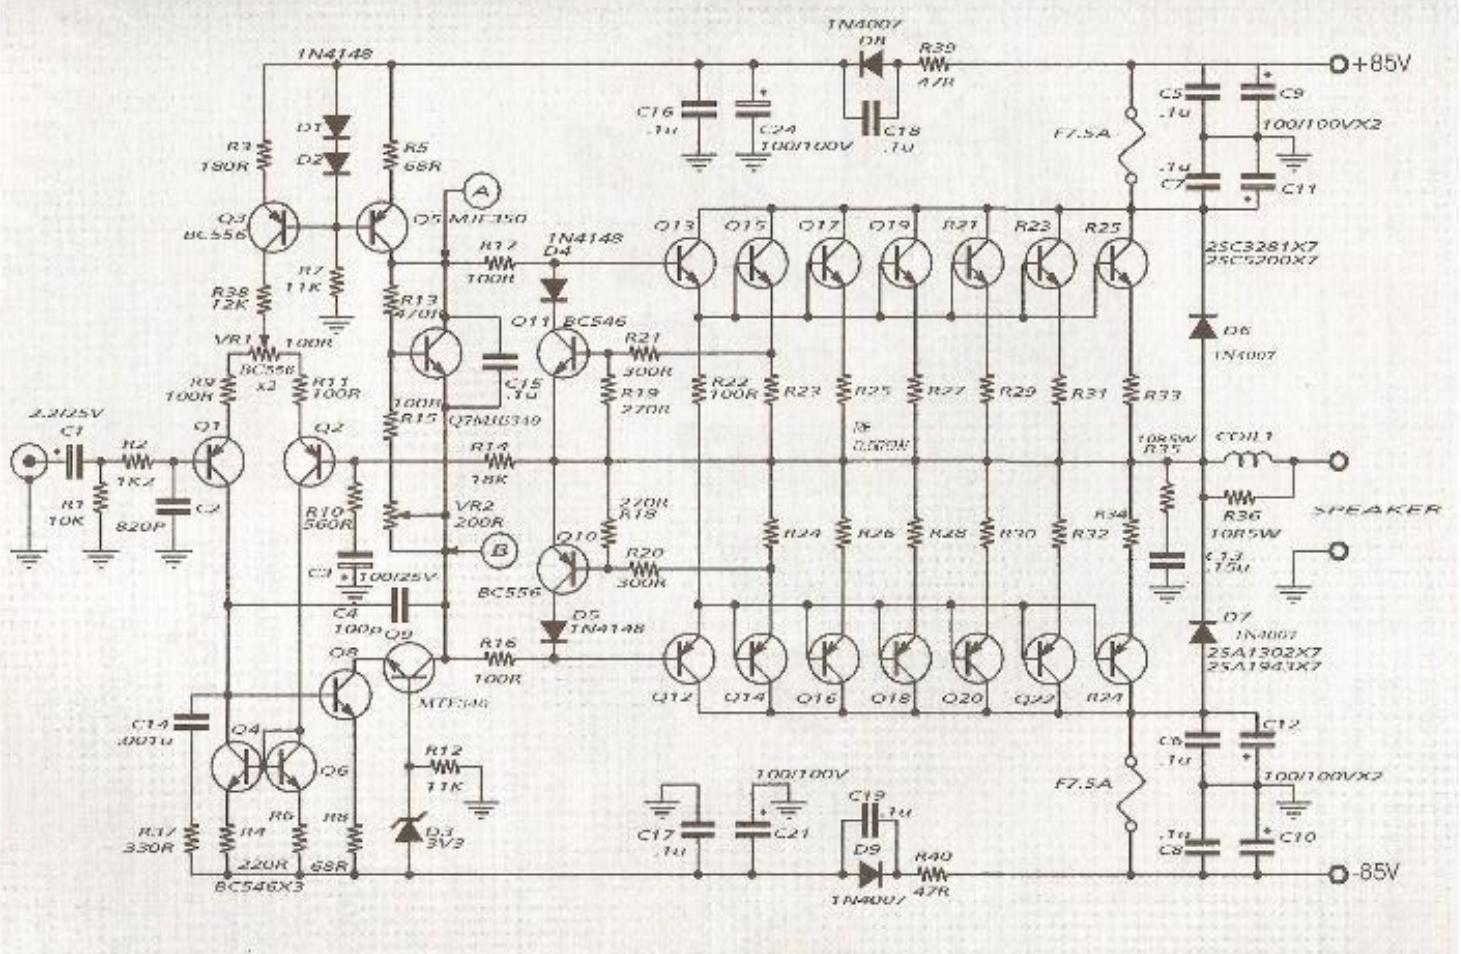 thunder amplifier schematic diagram